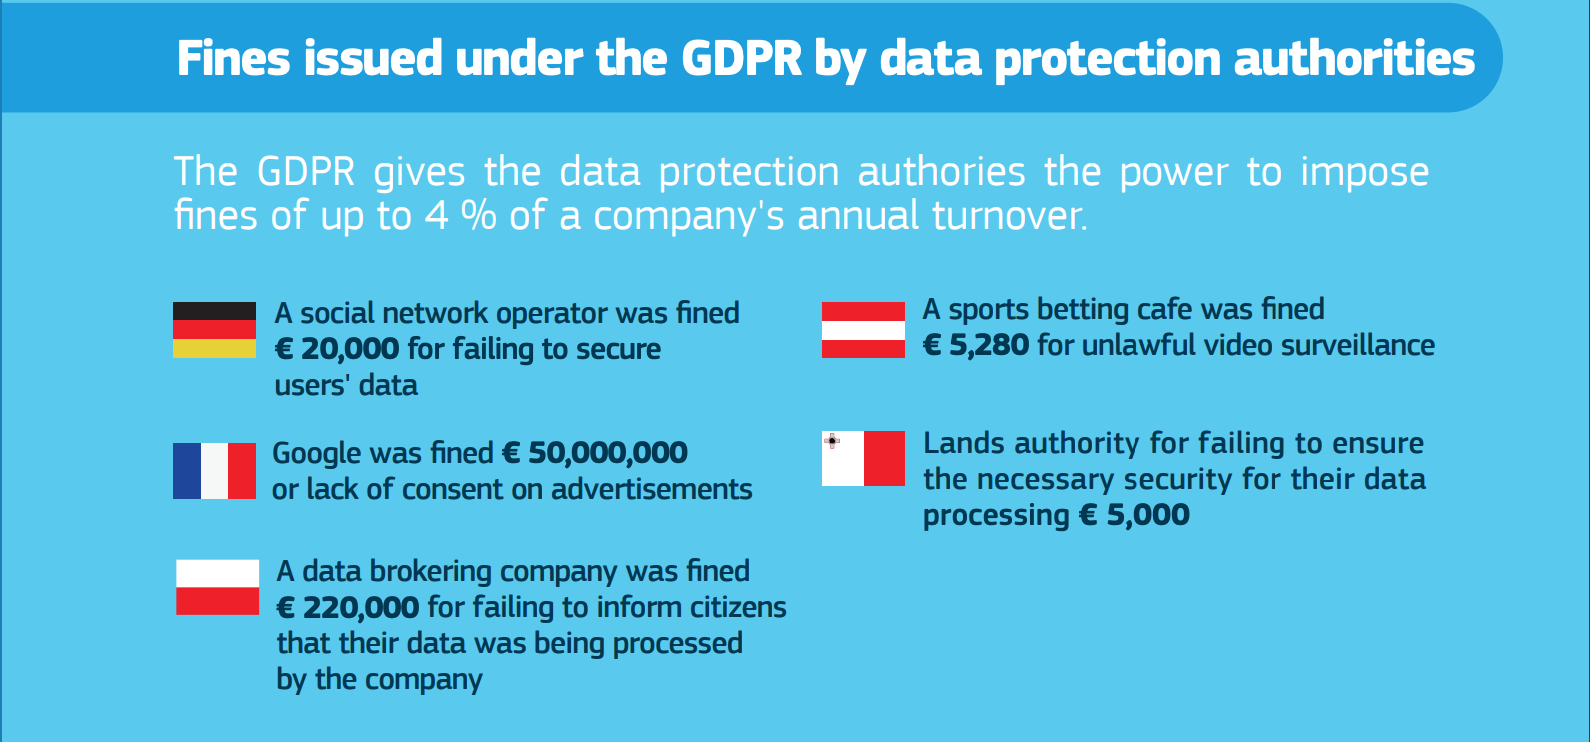 Fines issued under the GDPR by data protection authorities-1